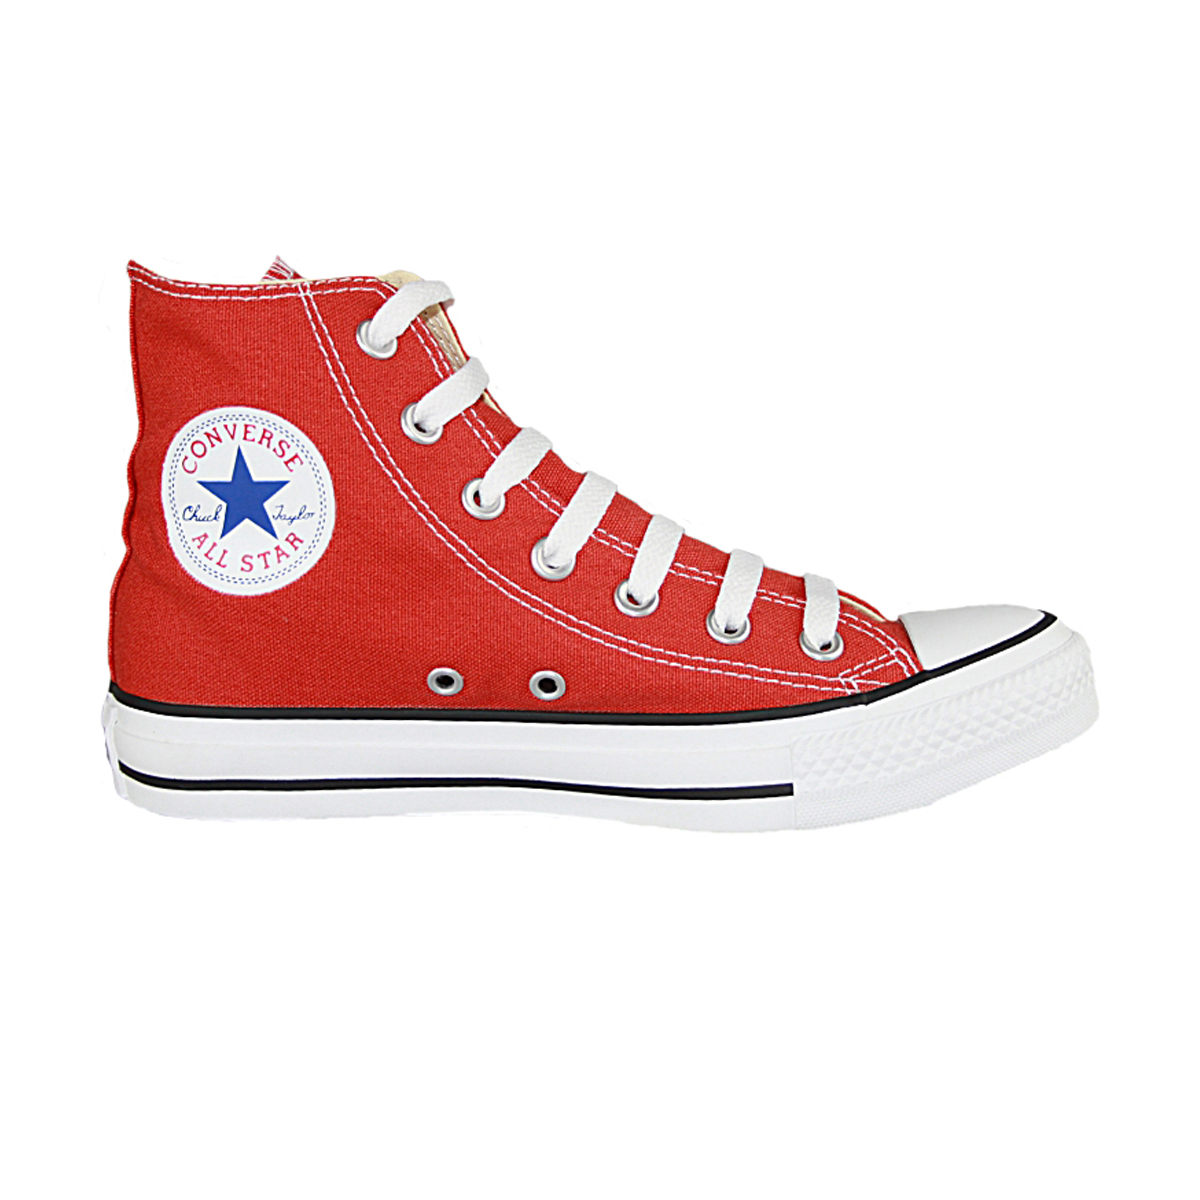 acdfc53ef07 Image is loading CLEARANCE-NEW-UNISEX-RED-CONVERSE-136815C-HI-TOP-